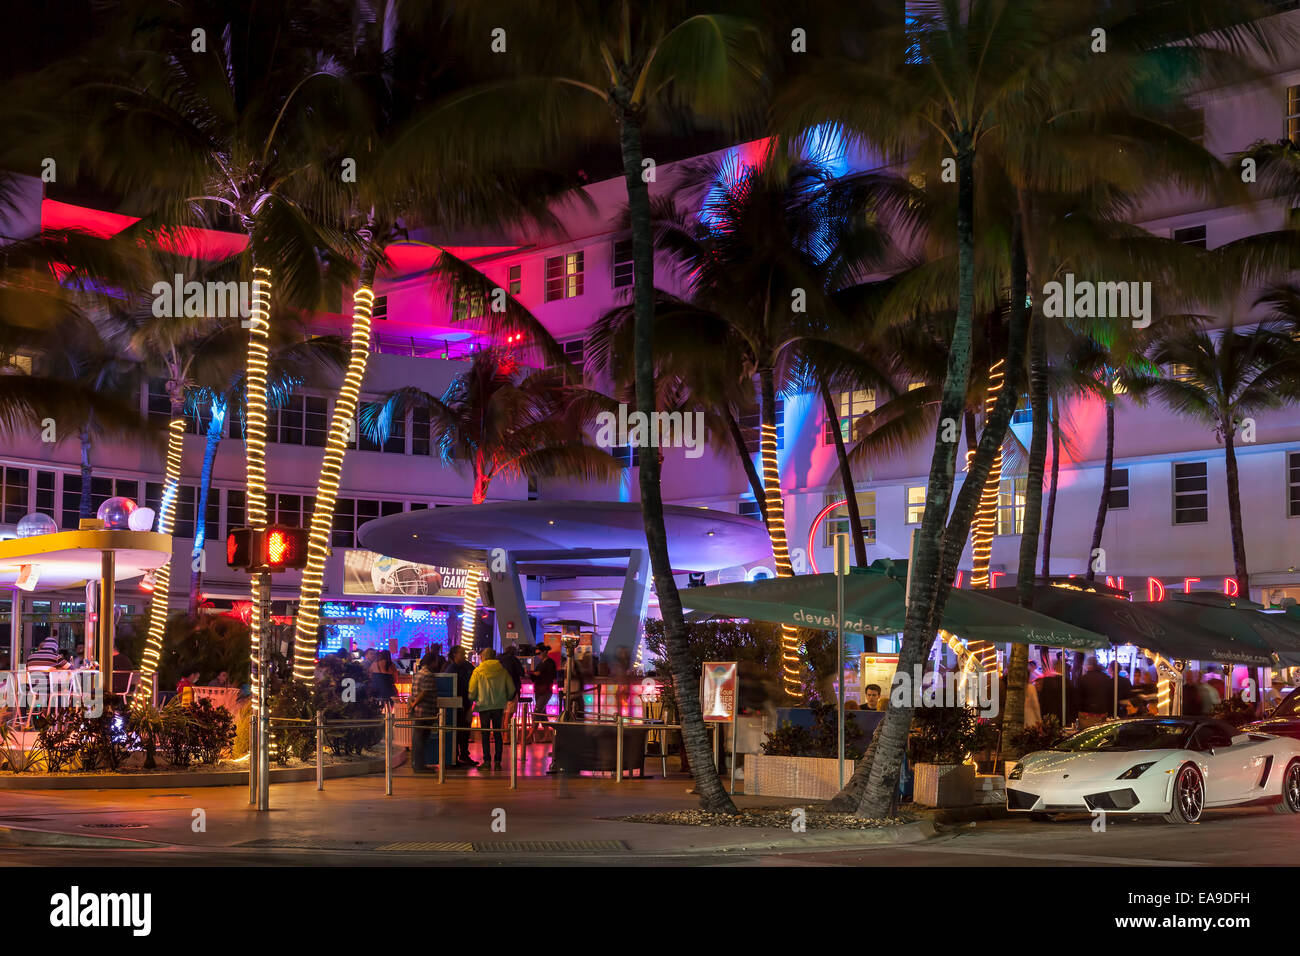 Colorful Lights And Fast Cars; Clevelander Hotel And